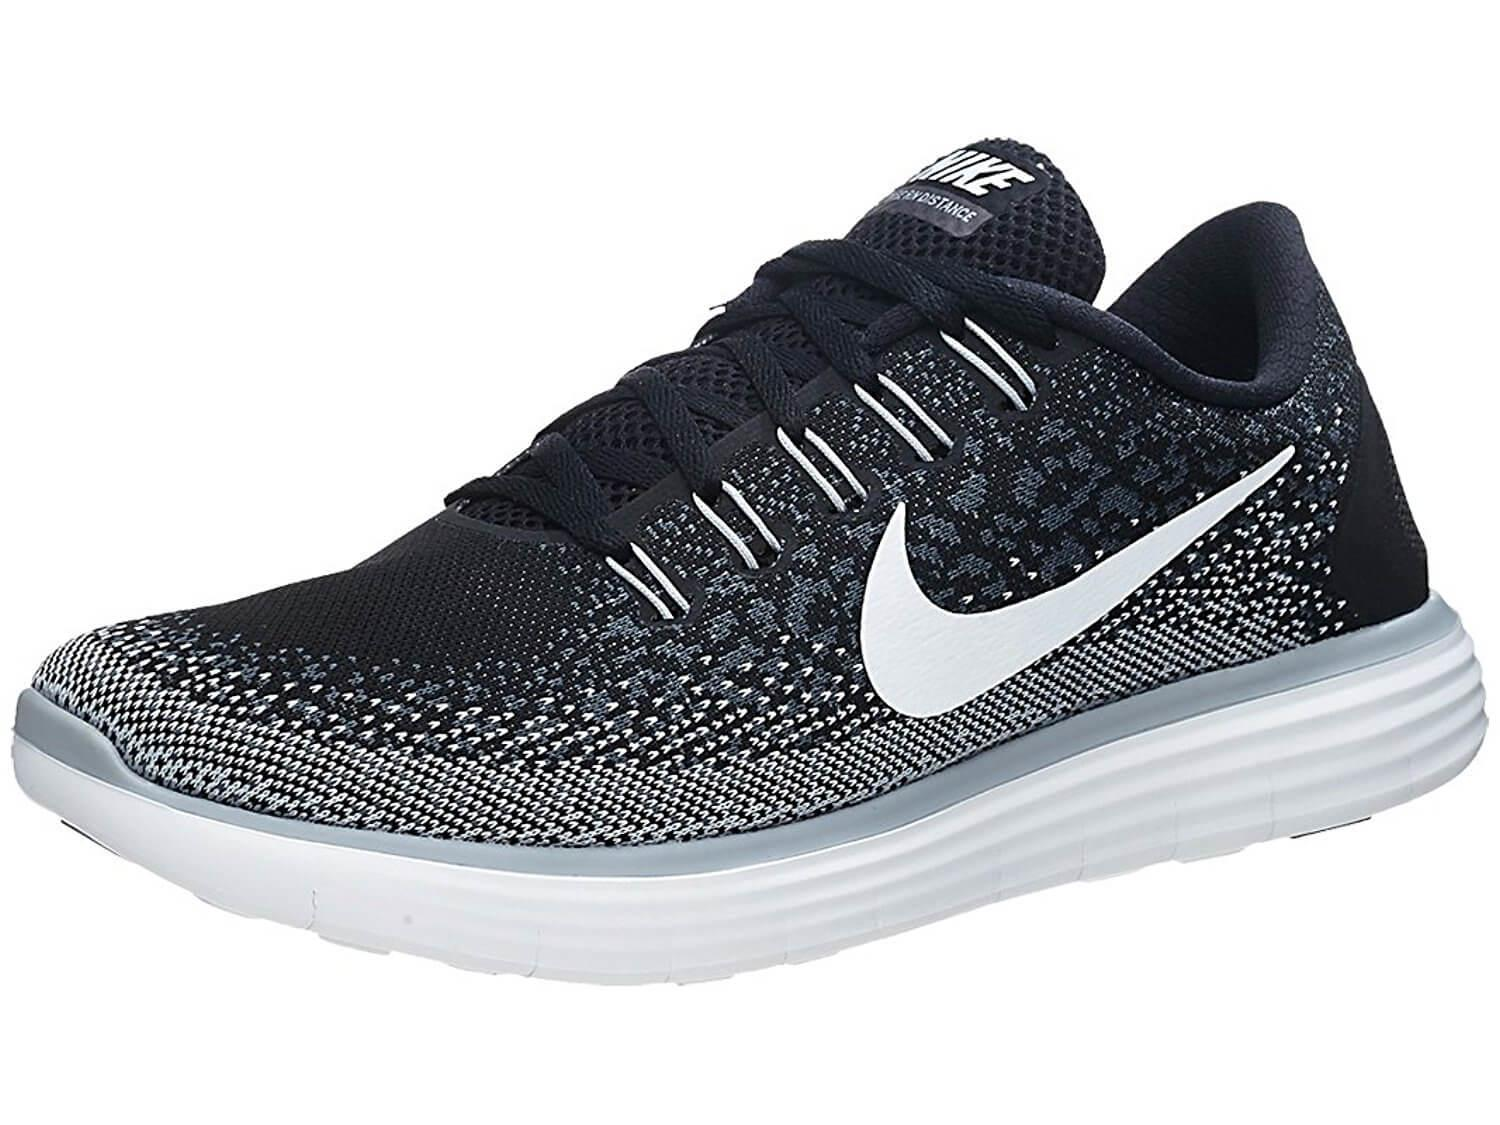 70370652654 The Nike Free RN Distance is an excellent all-around running shoe.